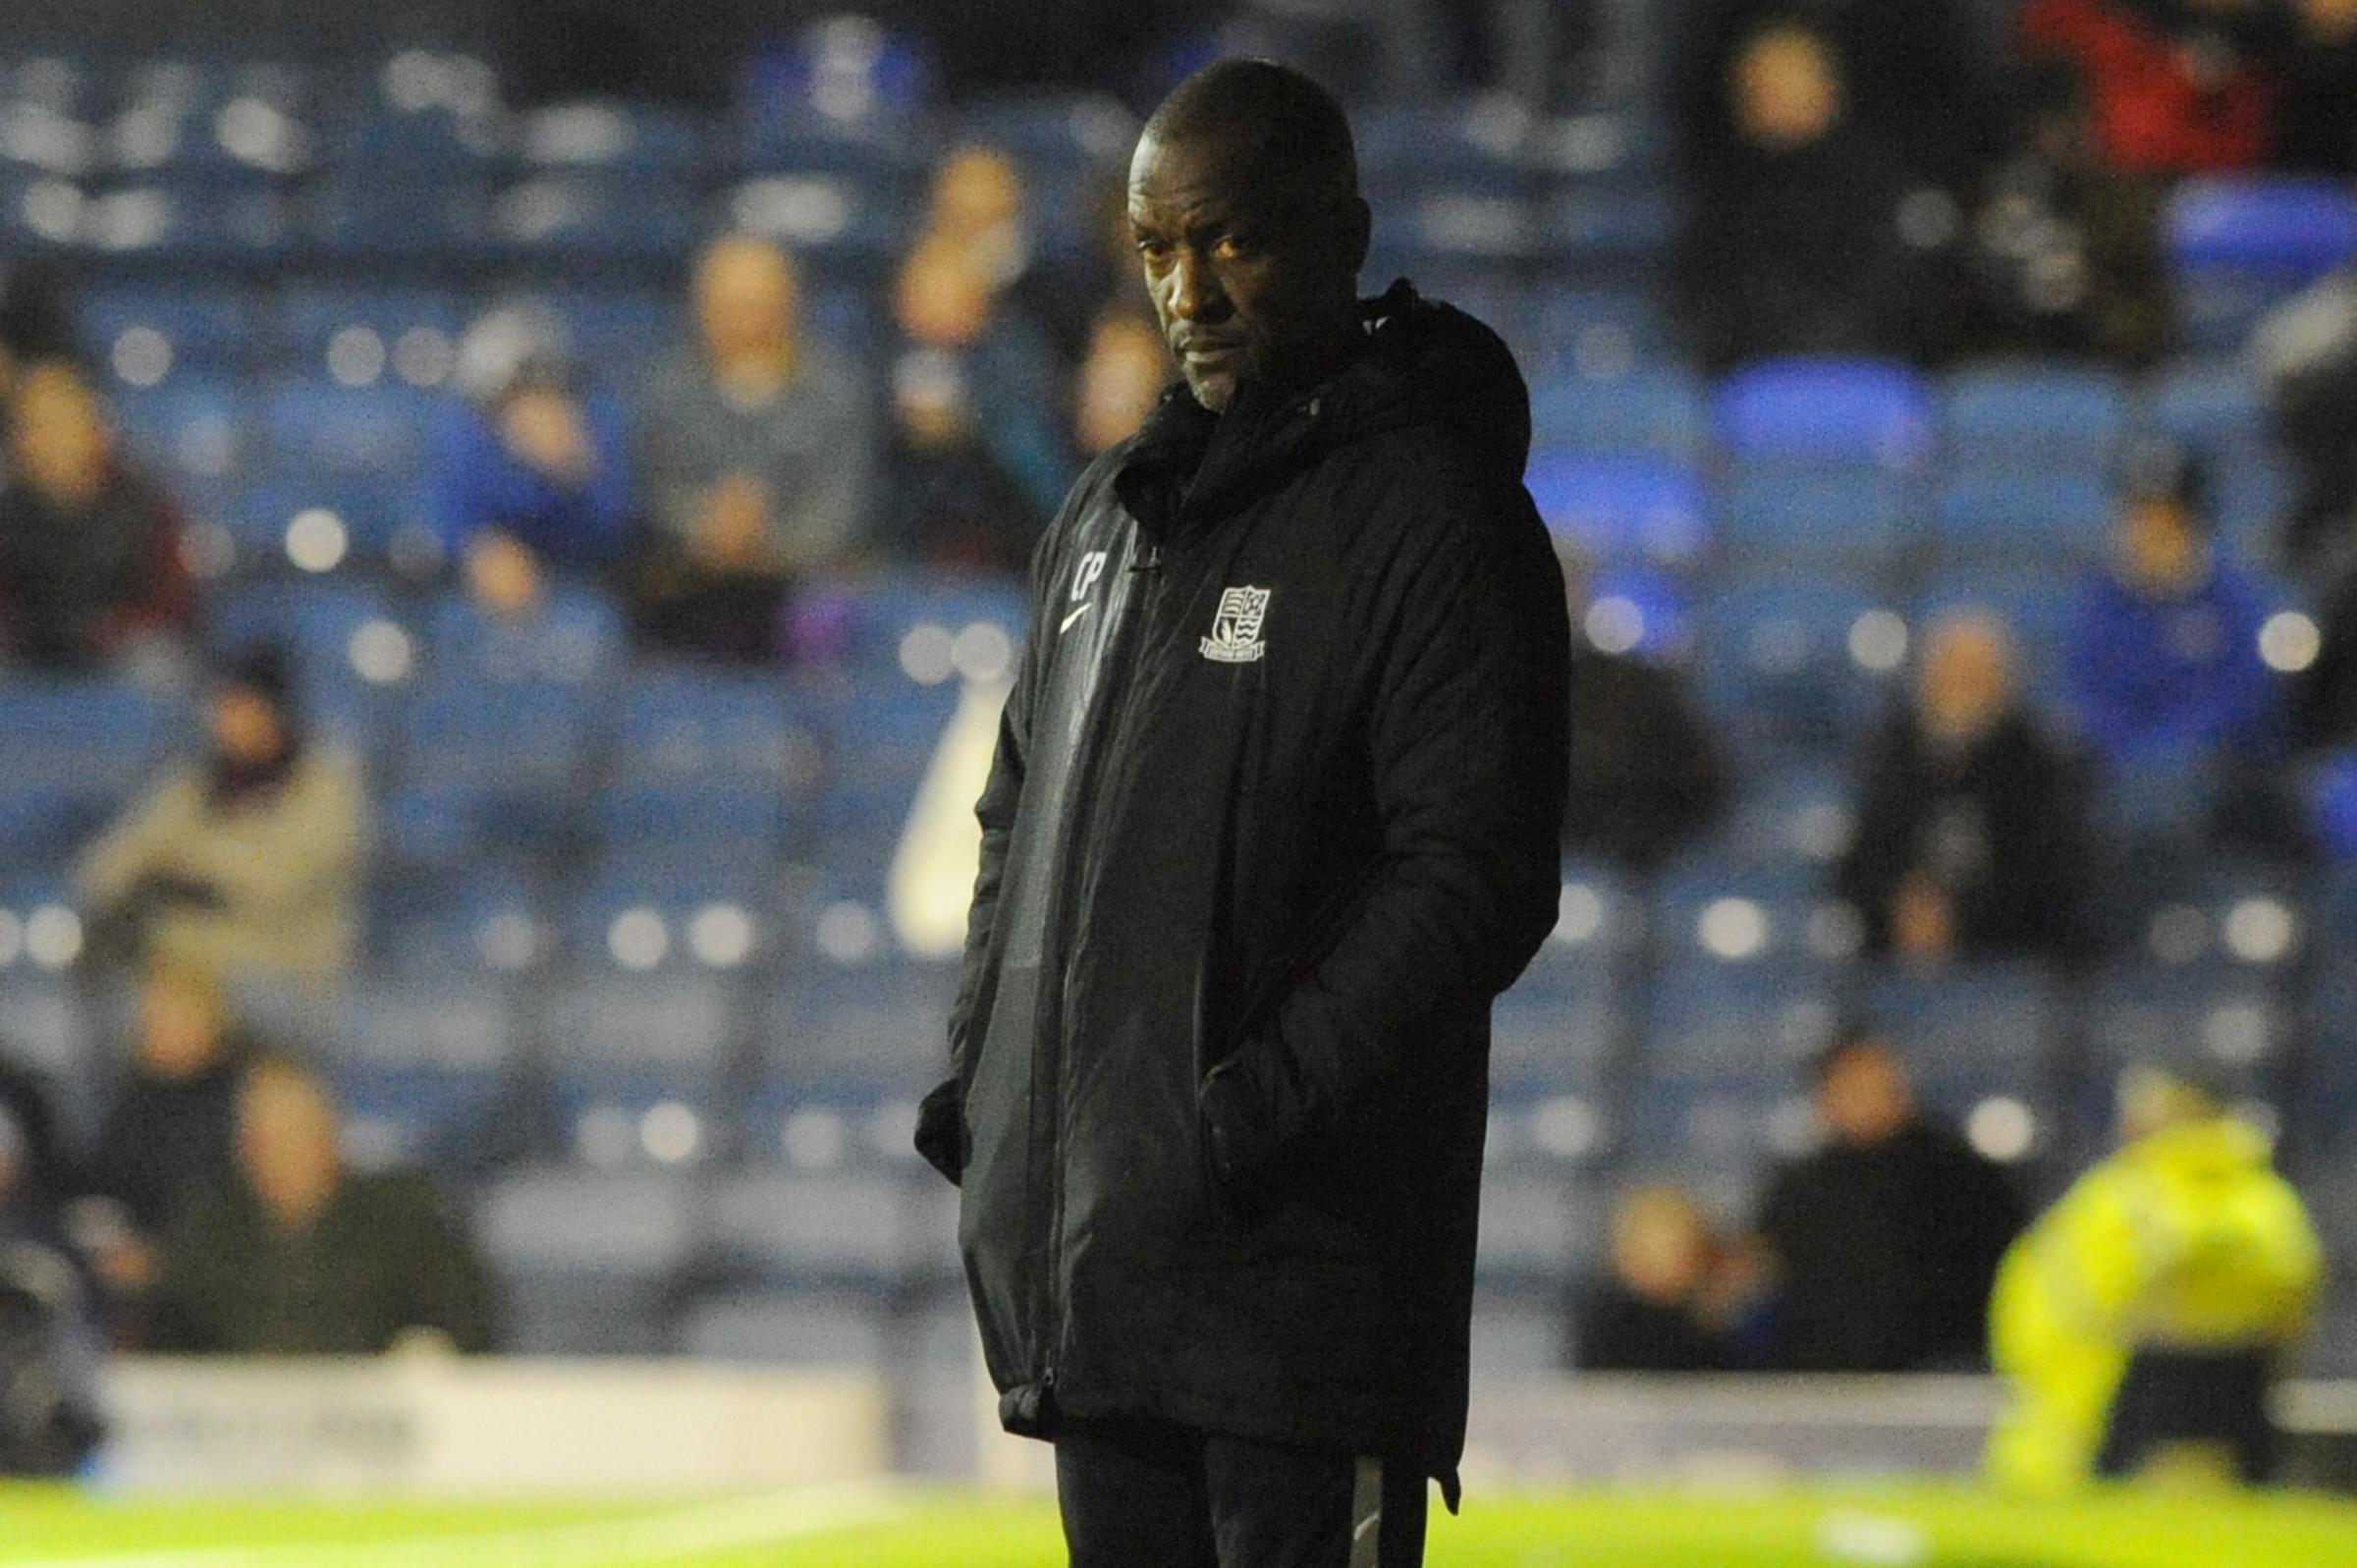 Frustrated - Southend United manager Chris Powell